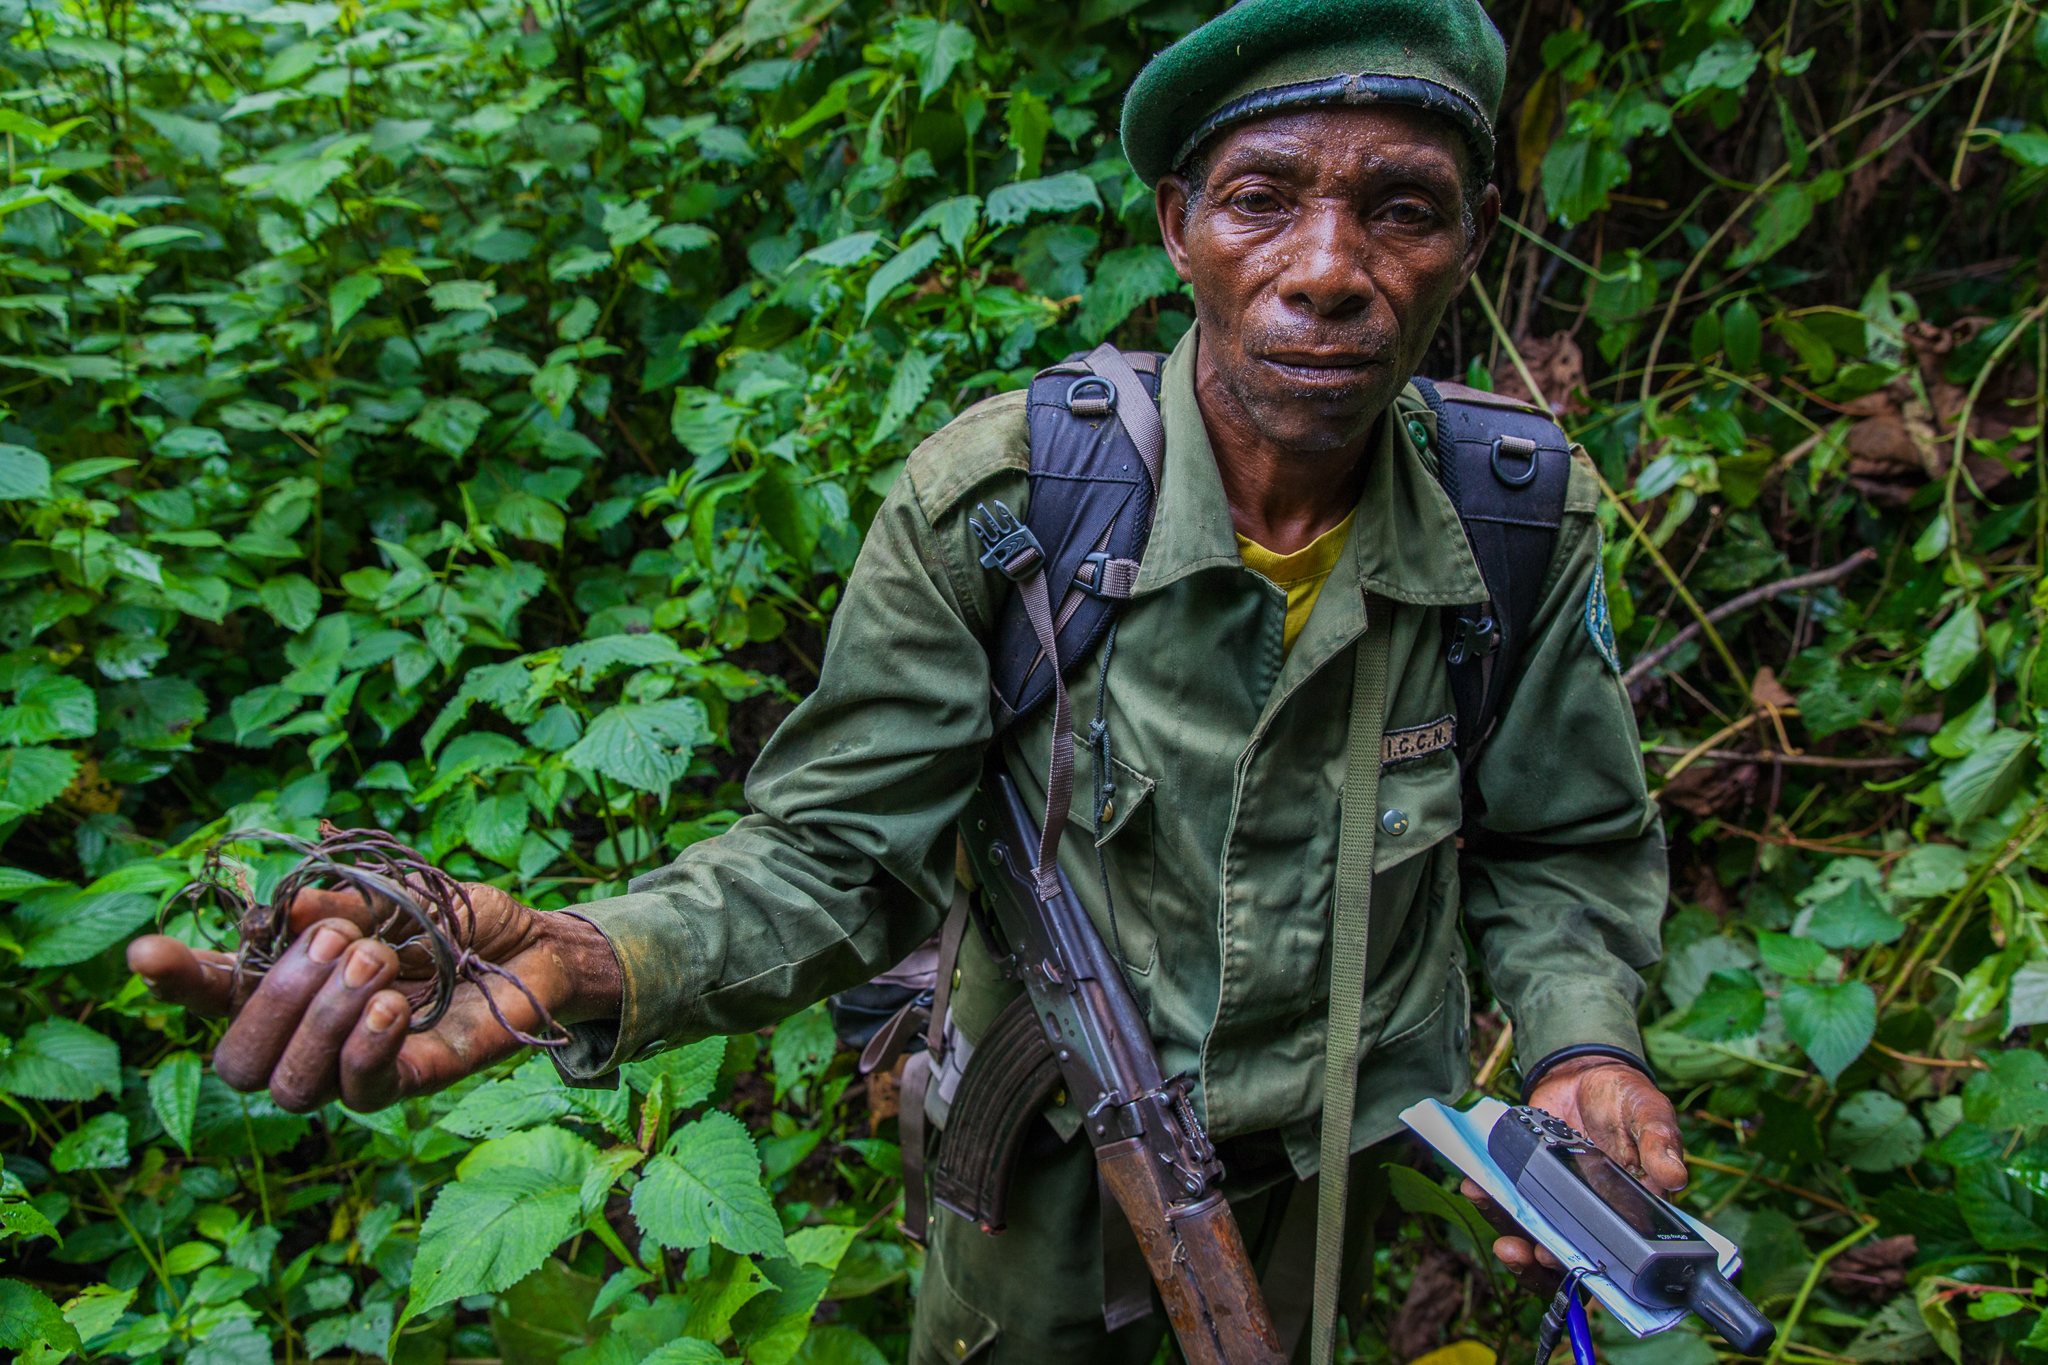 Although snares are used primarily to catch antelopes, bush pigs, and other sources of bush meat, they are indiscriminate killers--trapping leopards and gorillas just as easily as their intended victims. Park rangers look for and collect these lethal instruments on their daily patrols.